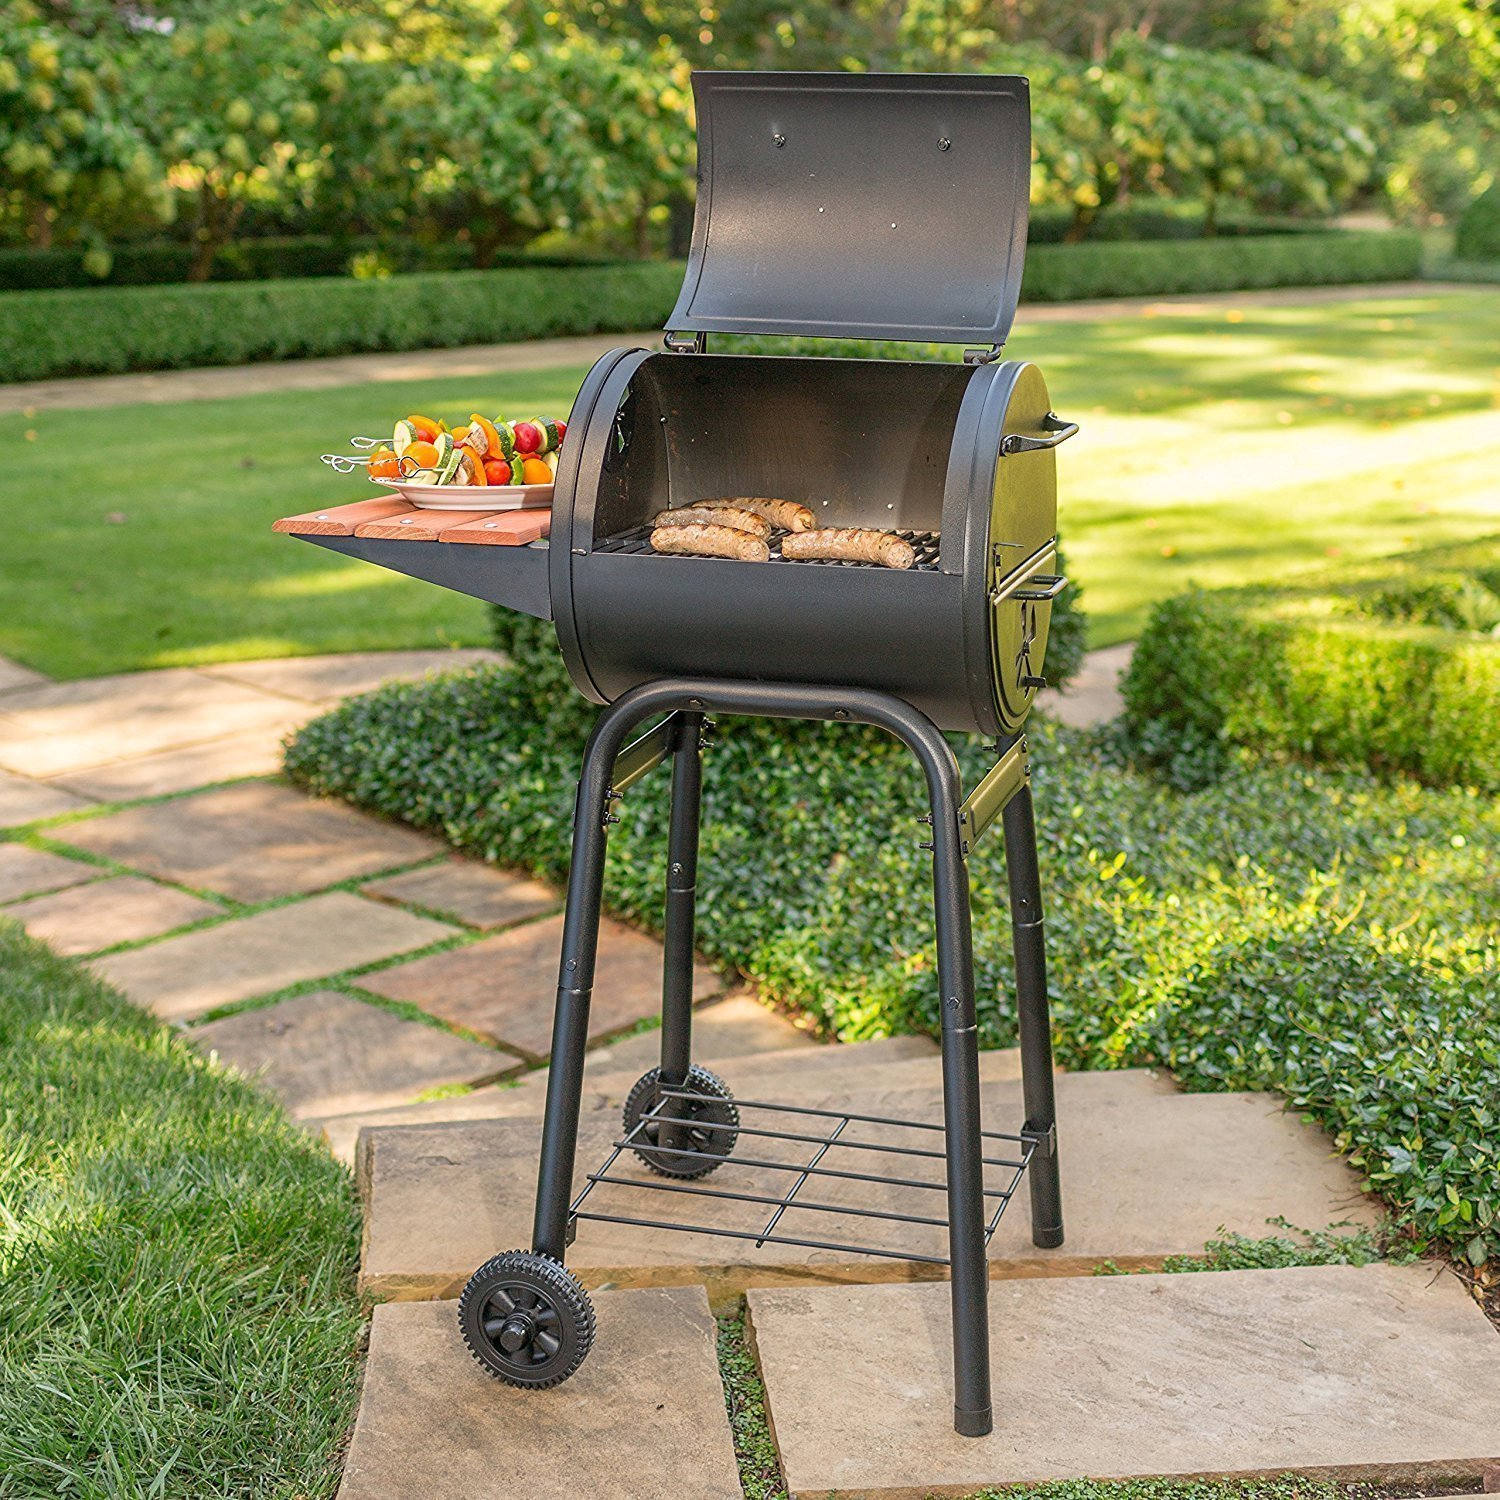 Superb Char Griller 1515 Patio Pro Charcoal Grill 2